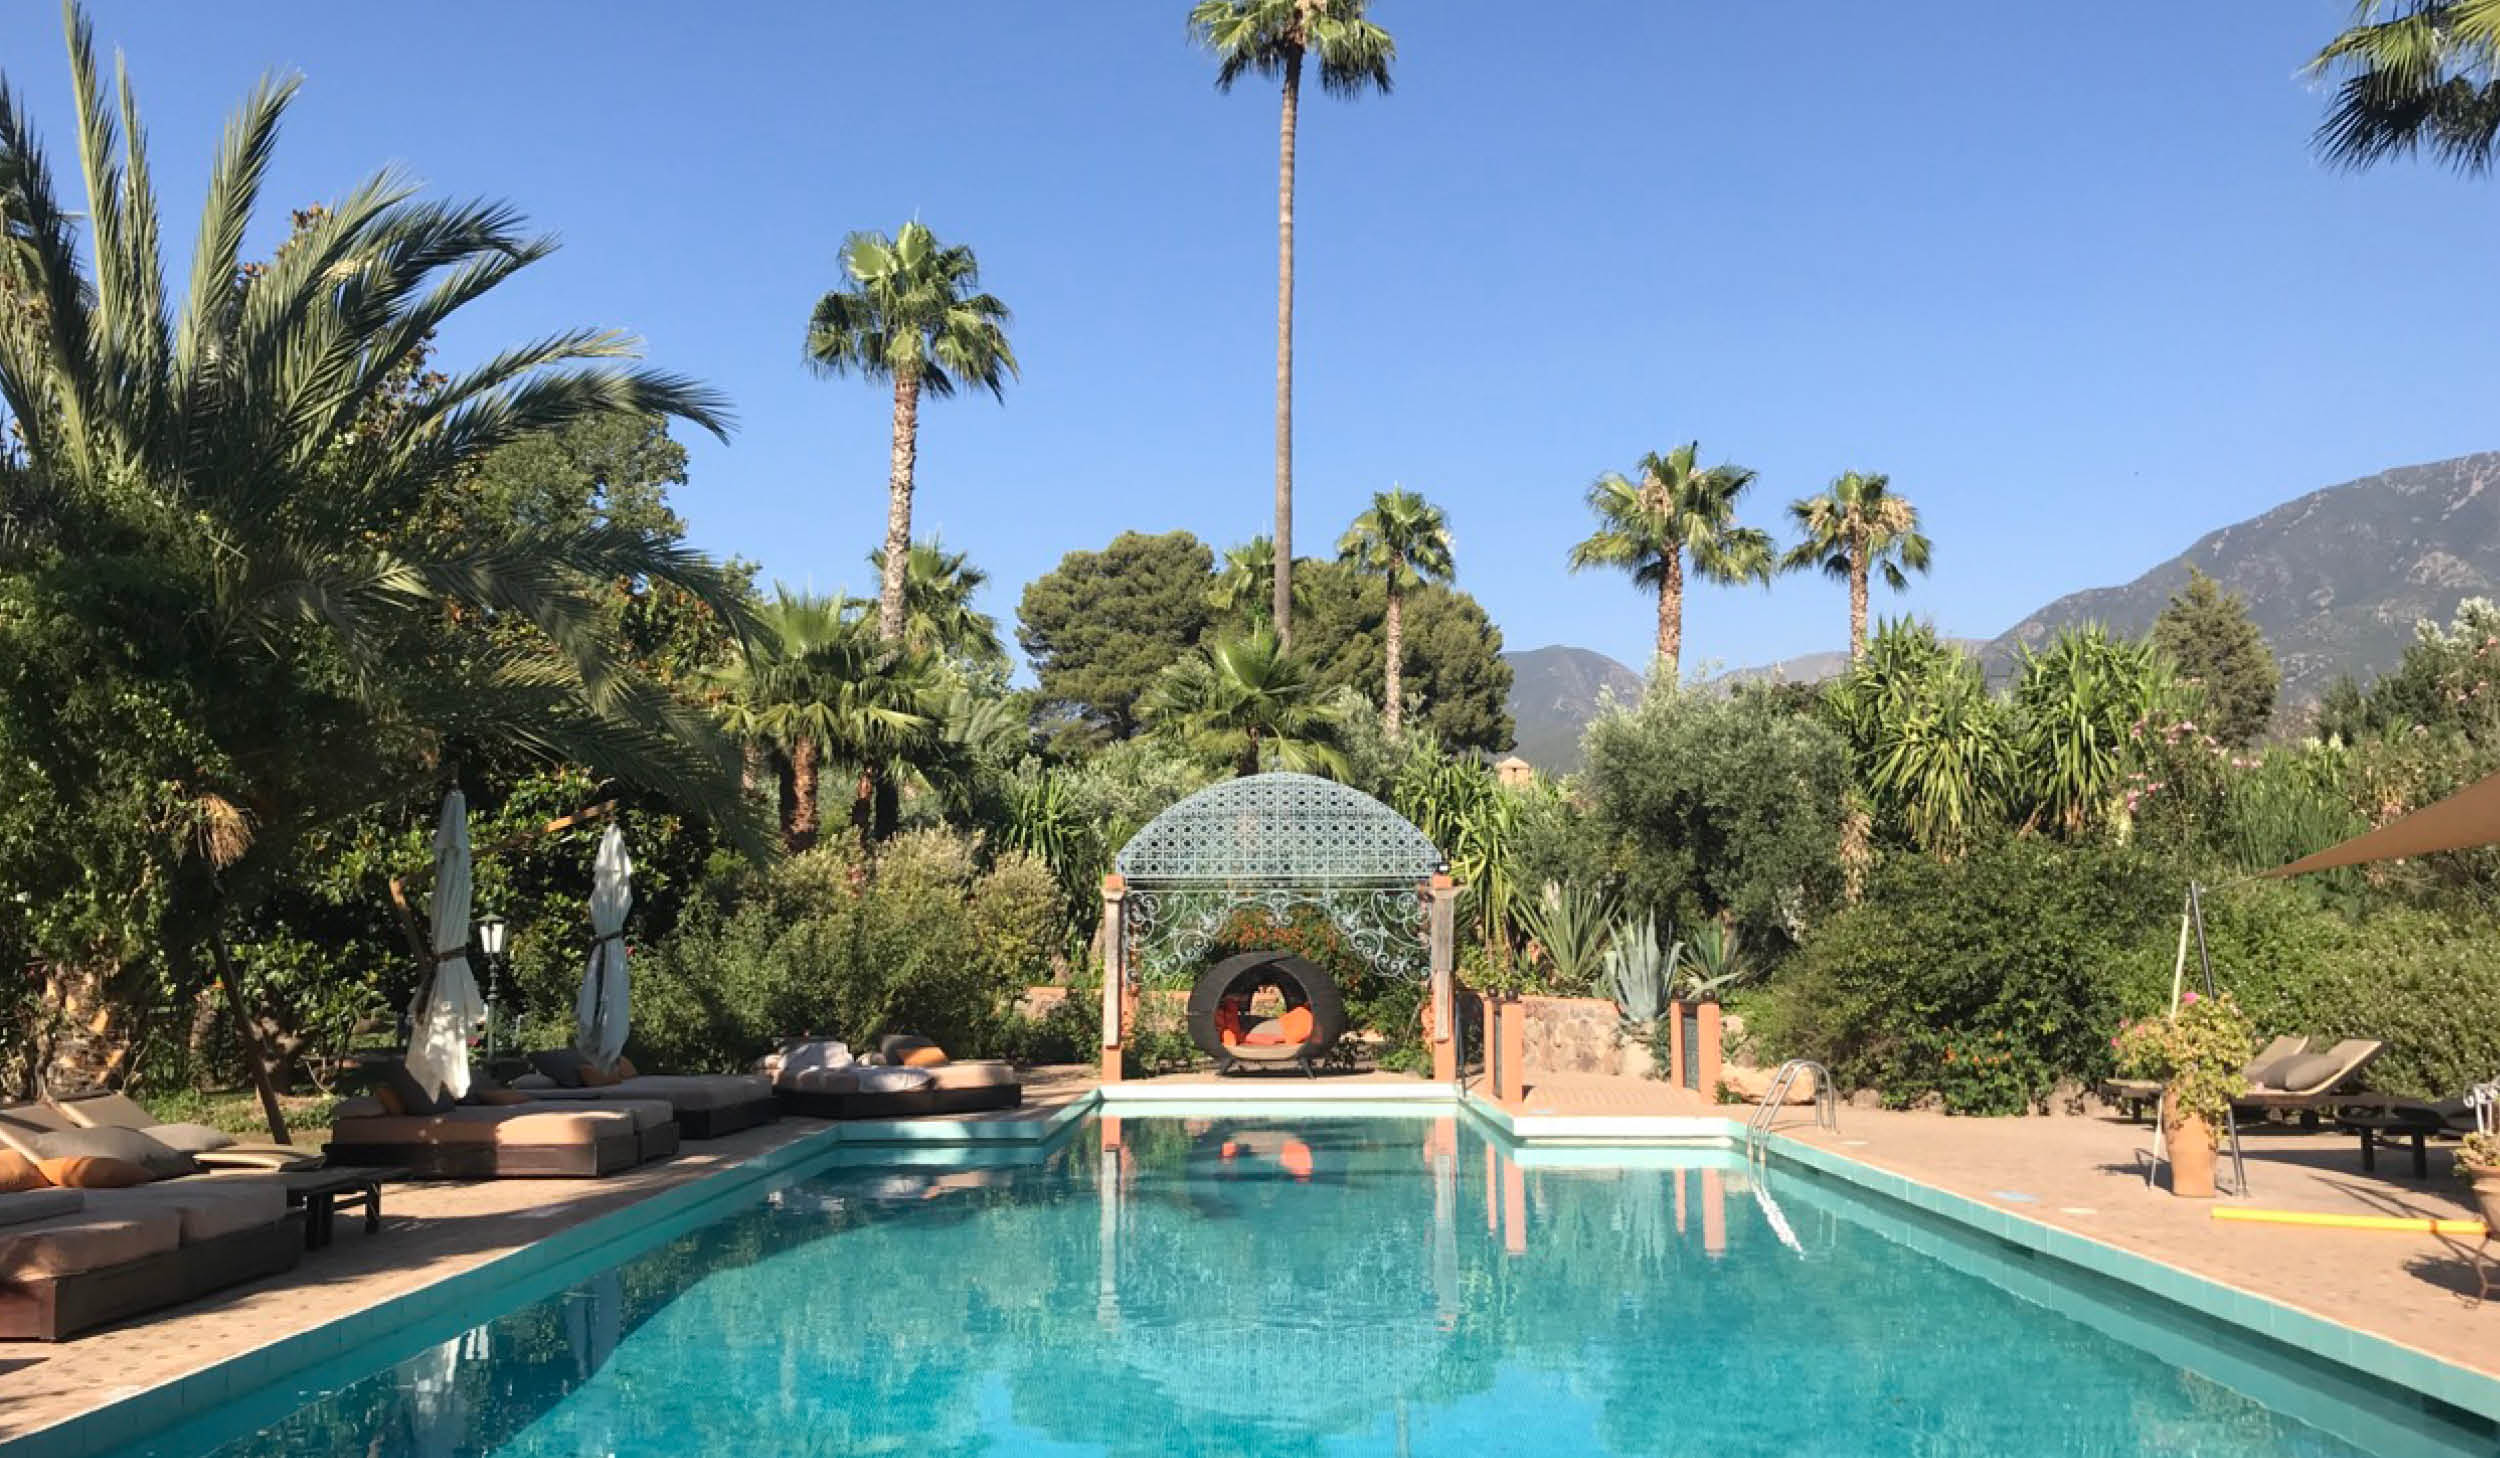 Romantic Morocco Holiday Offer4